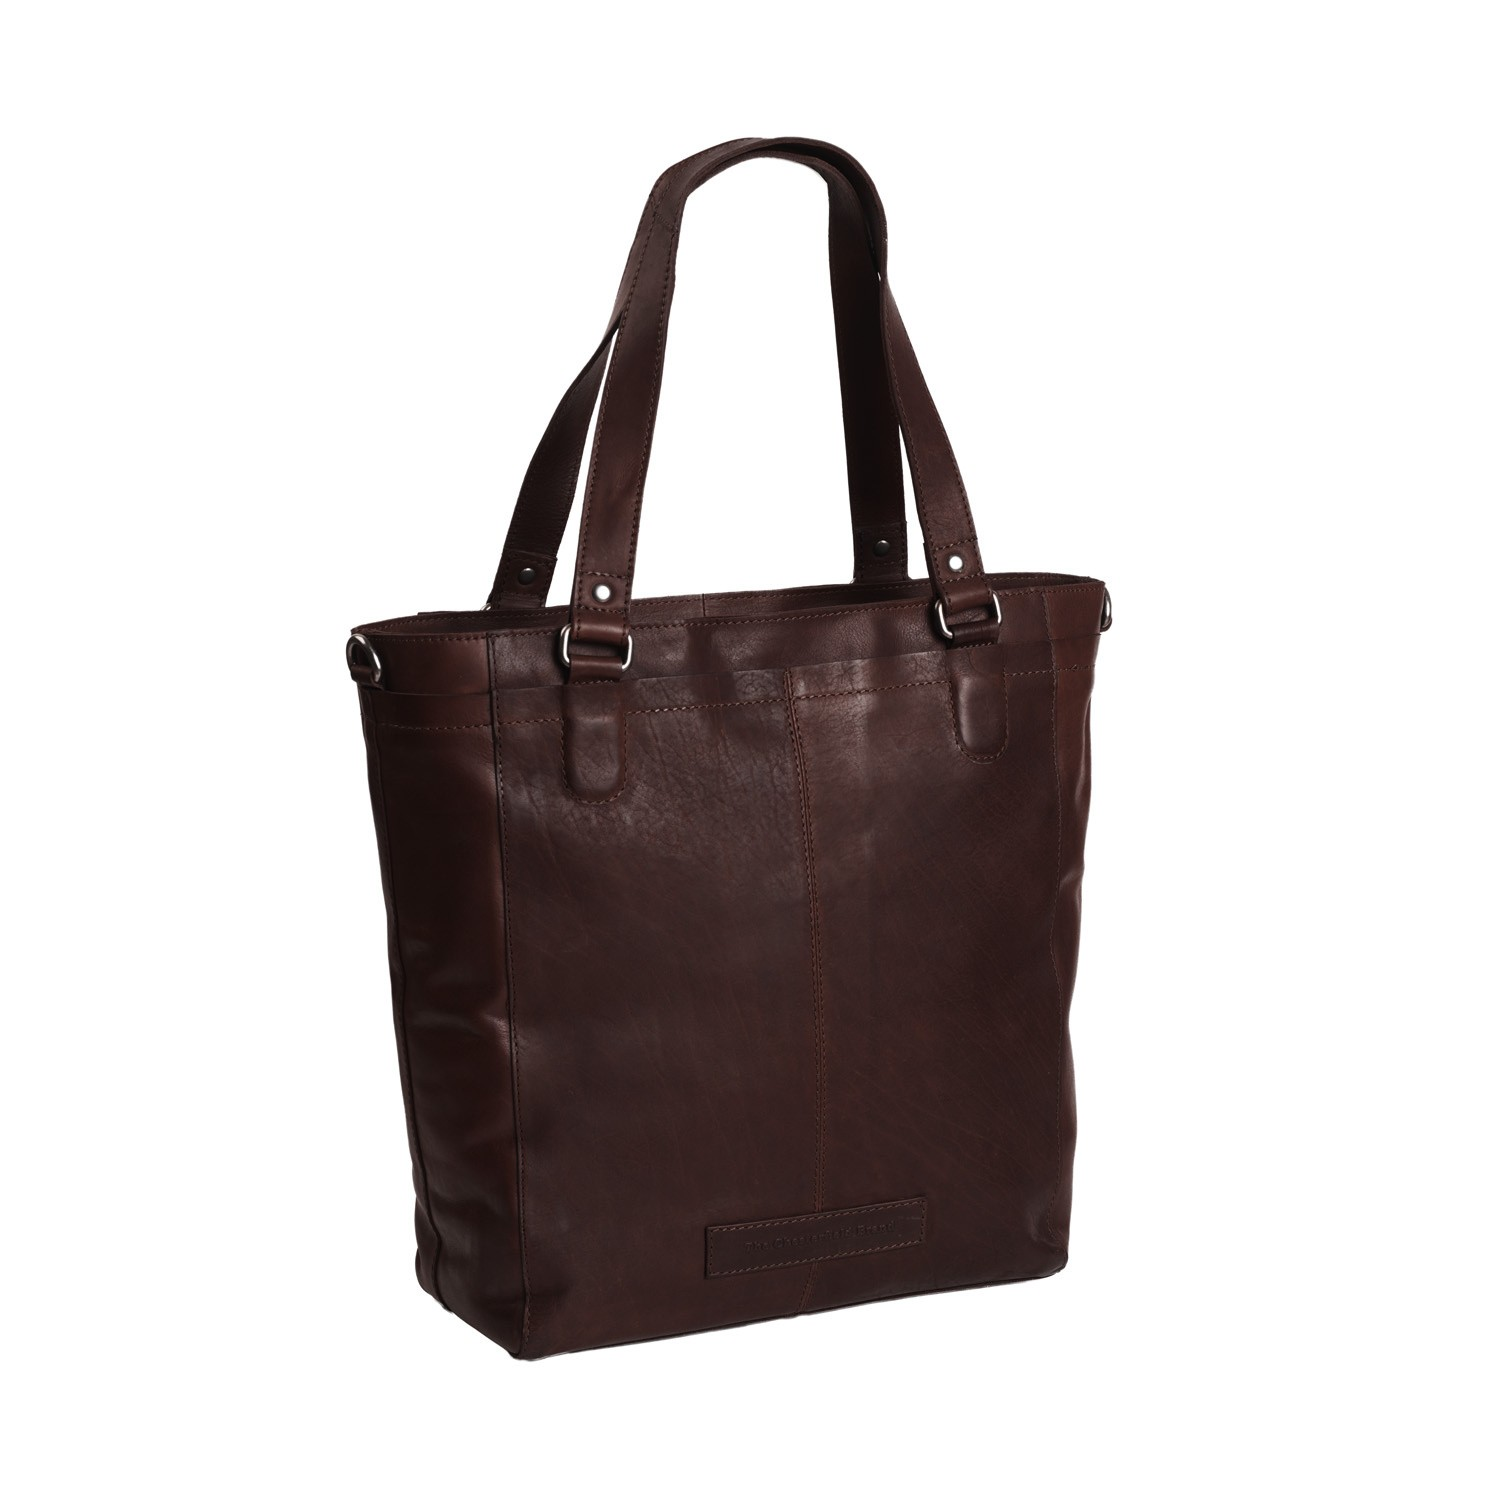 Bilde av Chesterfield Leather Tote Bag Brown Jade